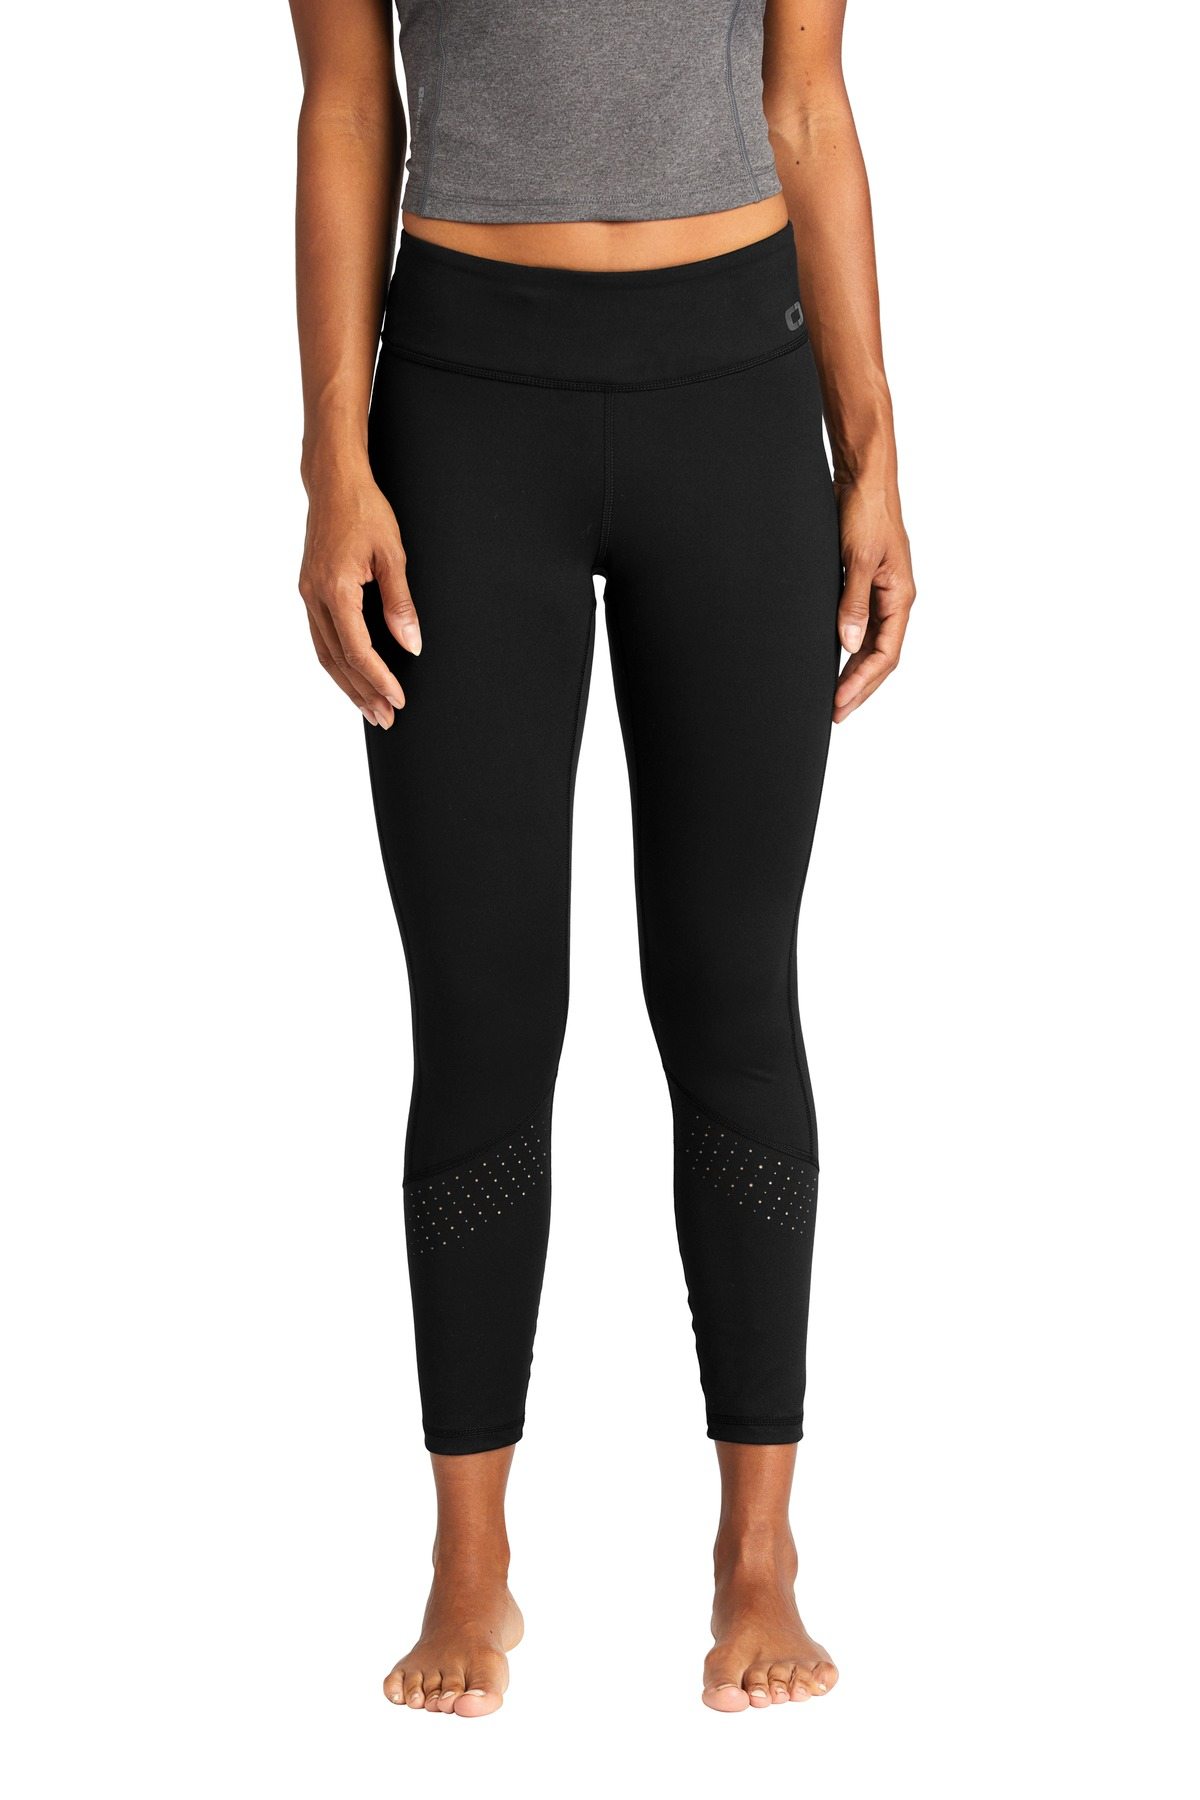 OGIO  ®  ENDURANCE Ladies Laser Tech Legging. LOE402 - Blacktop